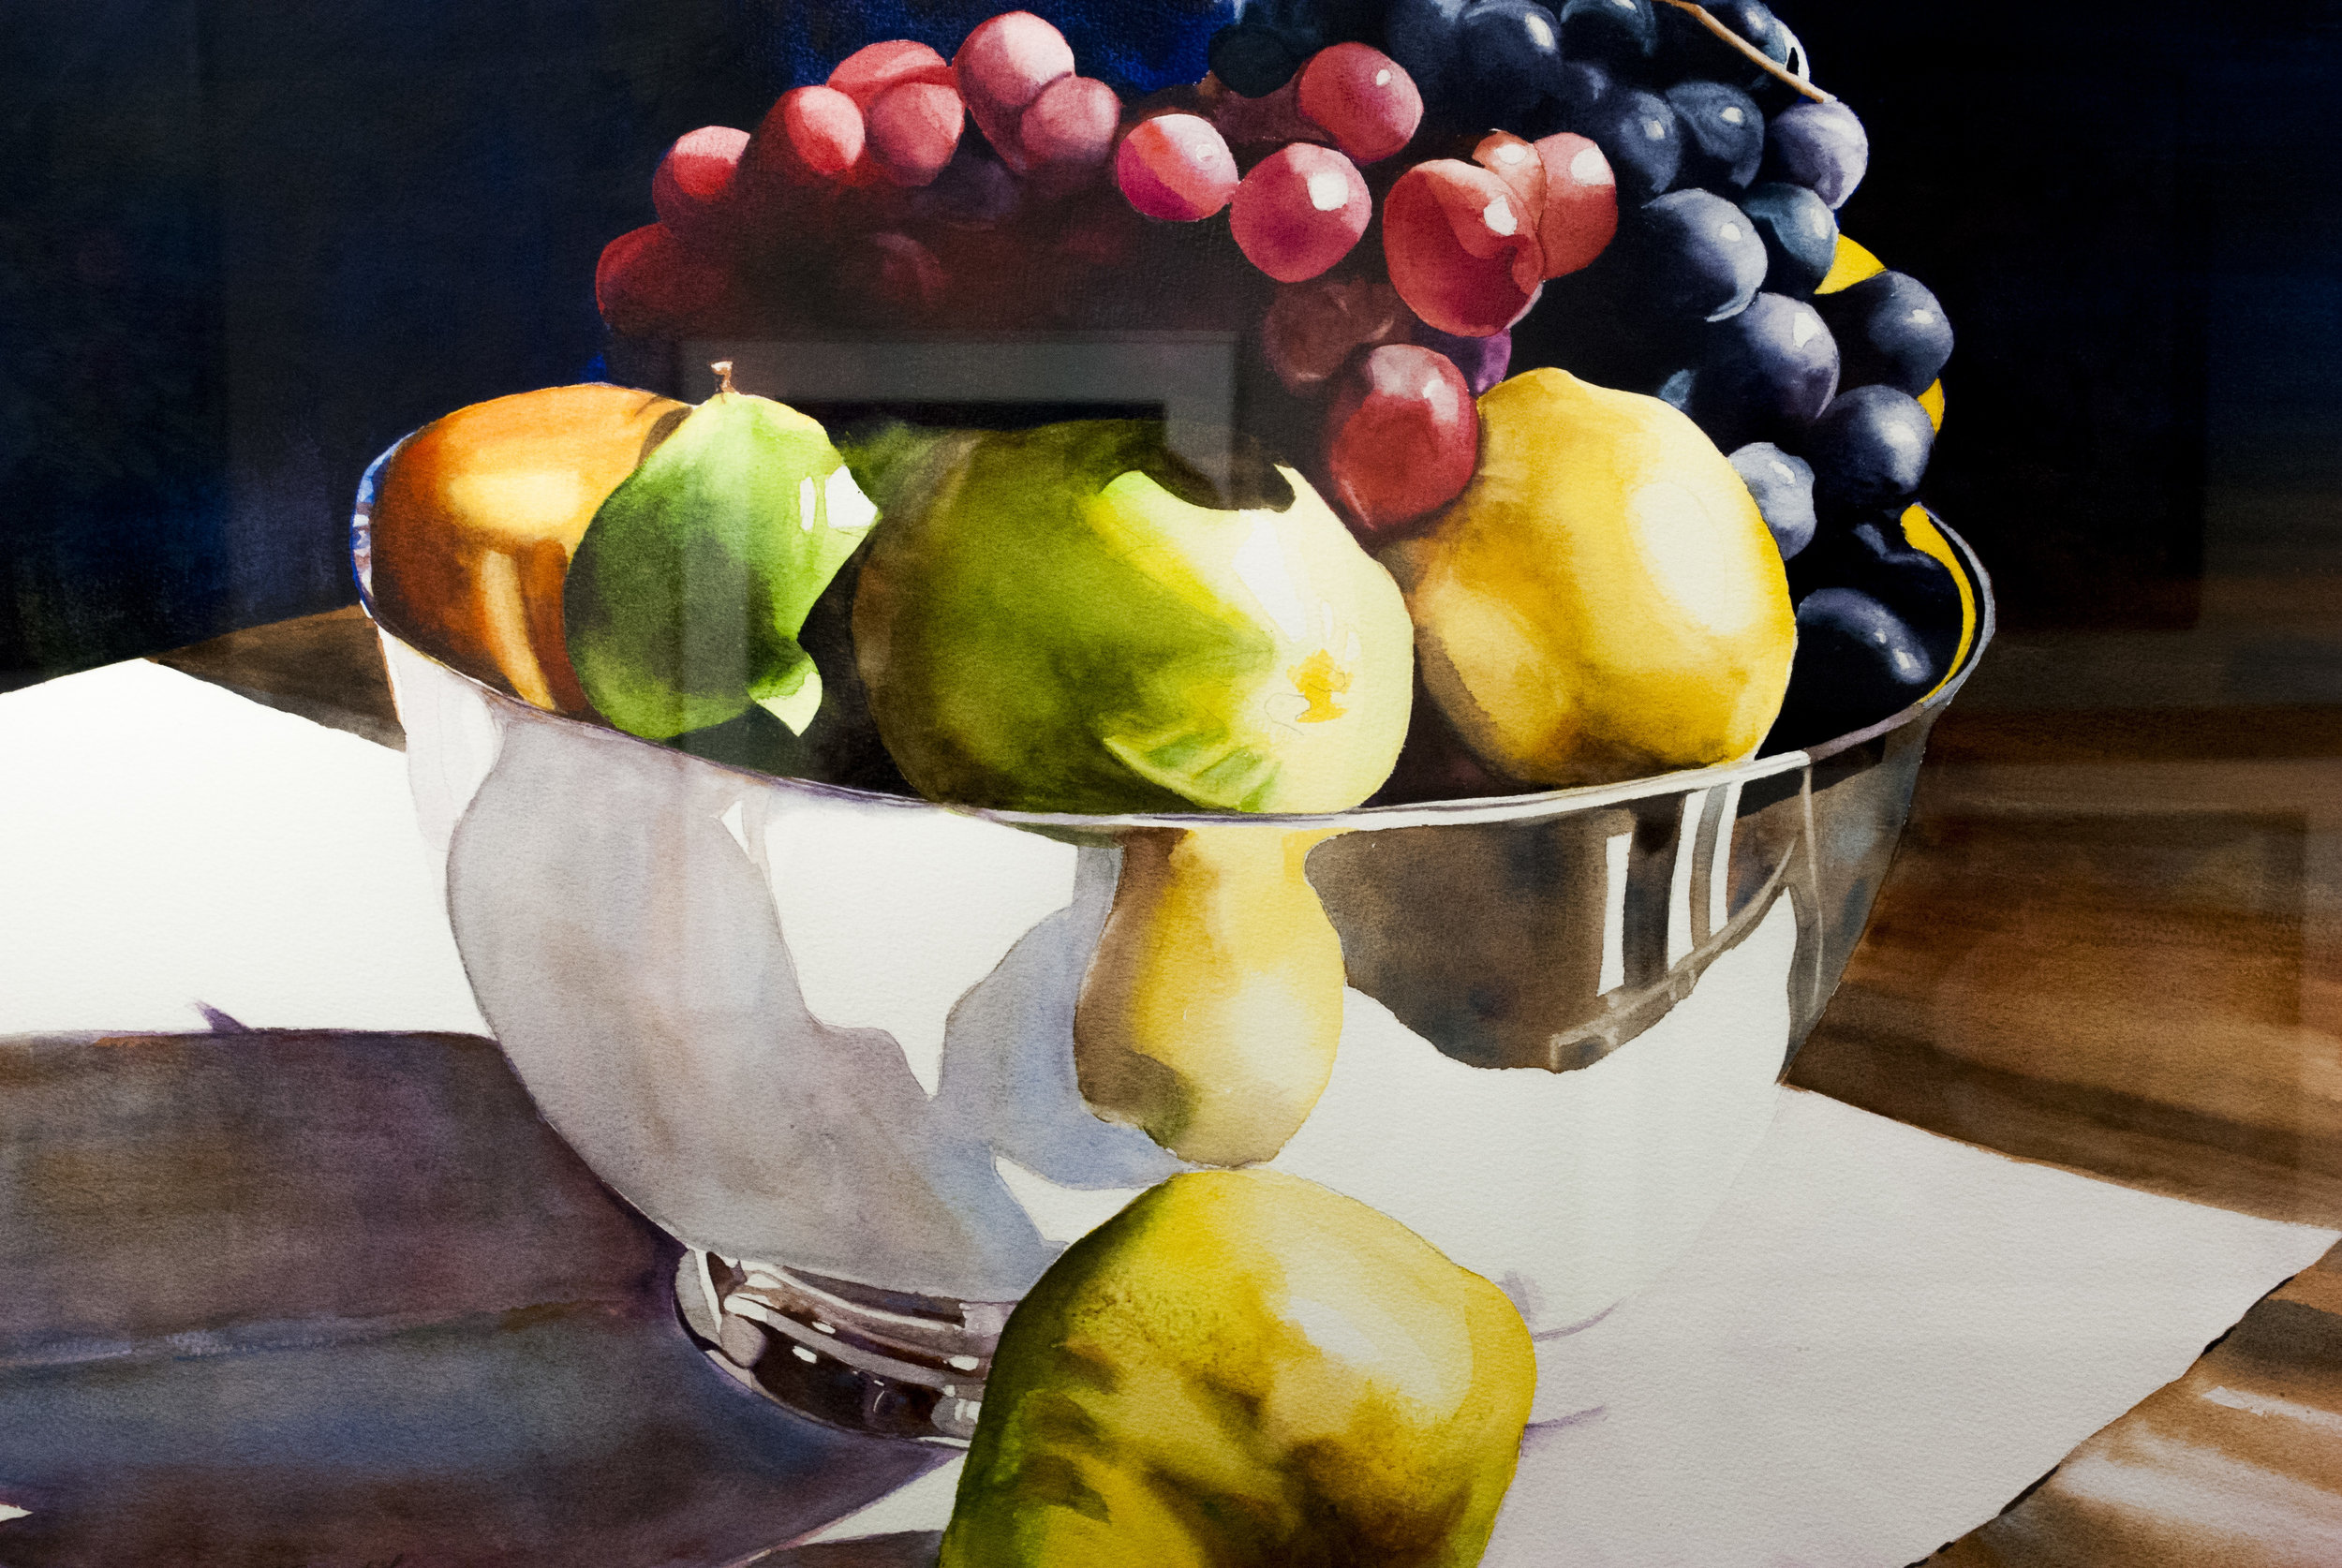 MERIT: SILVER BOWL WITH FRUIT BY ESTHER GARFINKEL